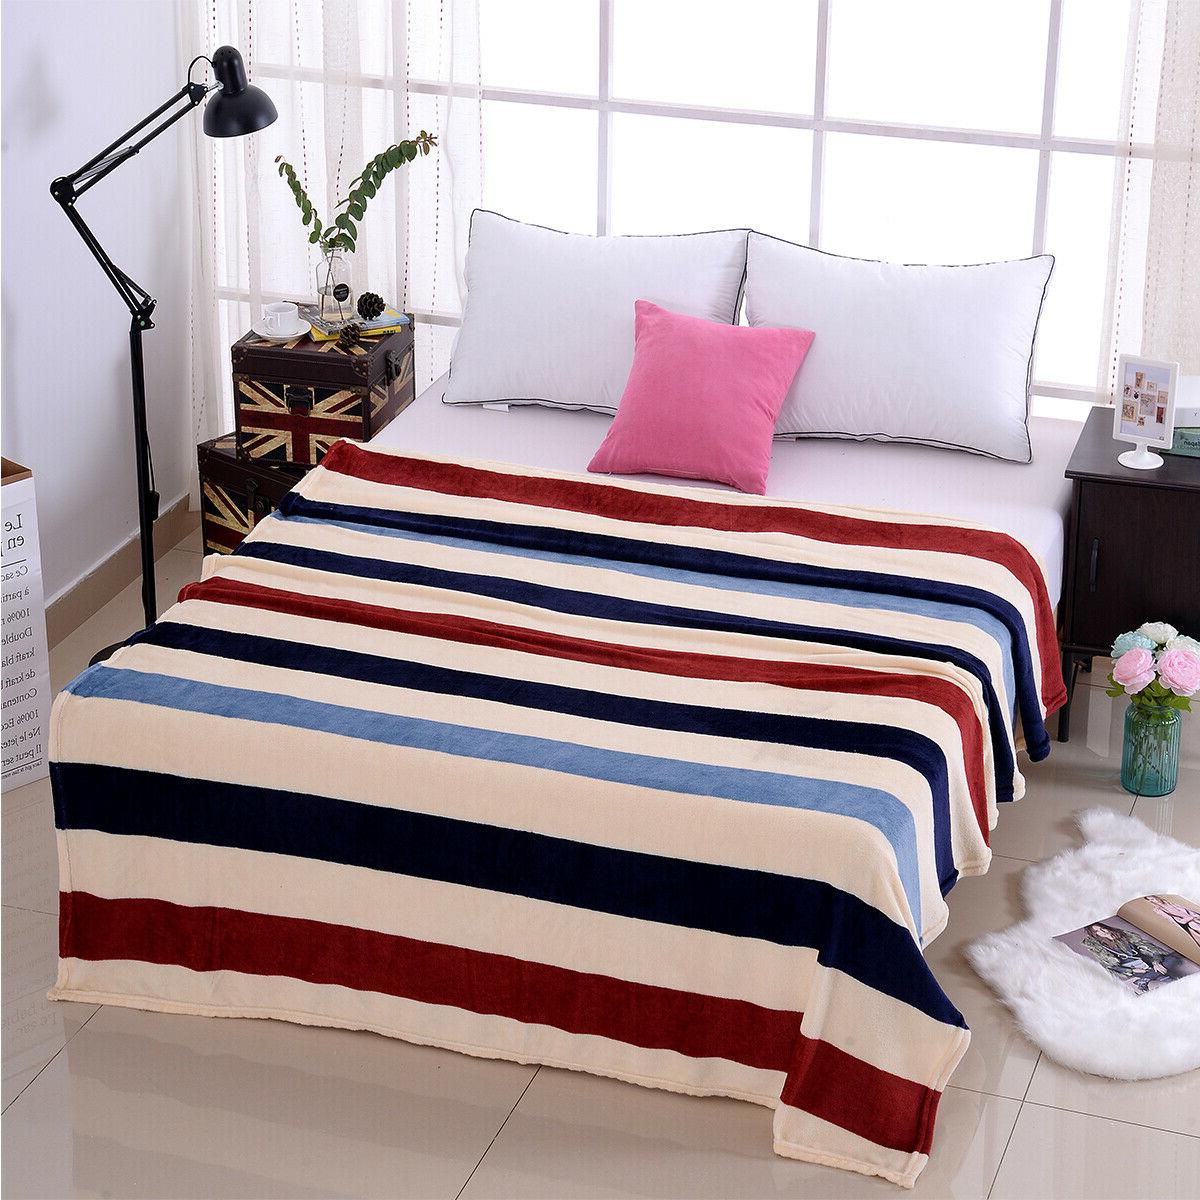 Supersoft Blanket Plush Decor Cal